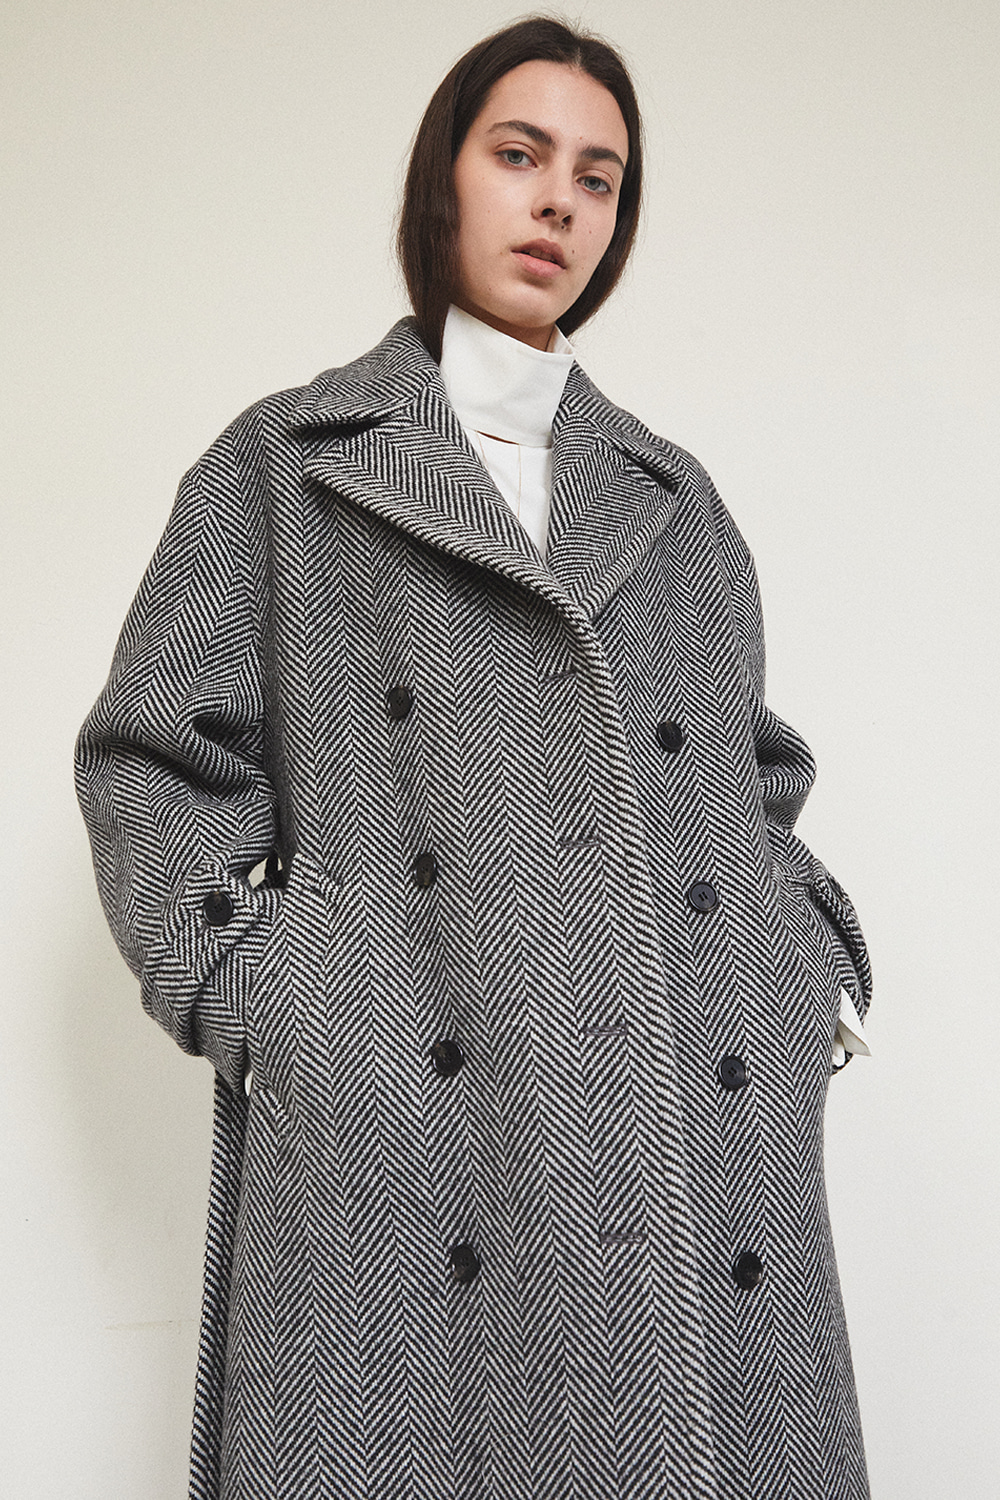 HANDMADE DOUBLE COAT [HERRINGBONE] - 자체브랜드 - 기본트렌드